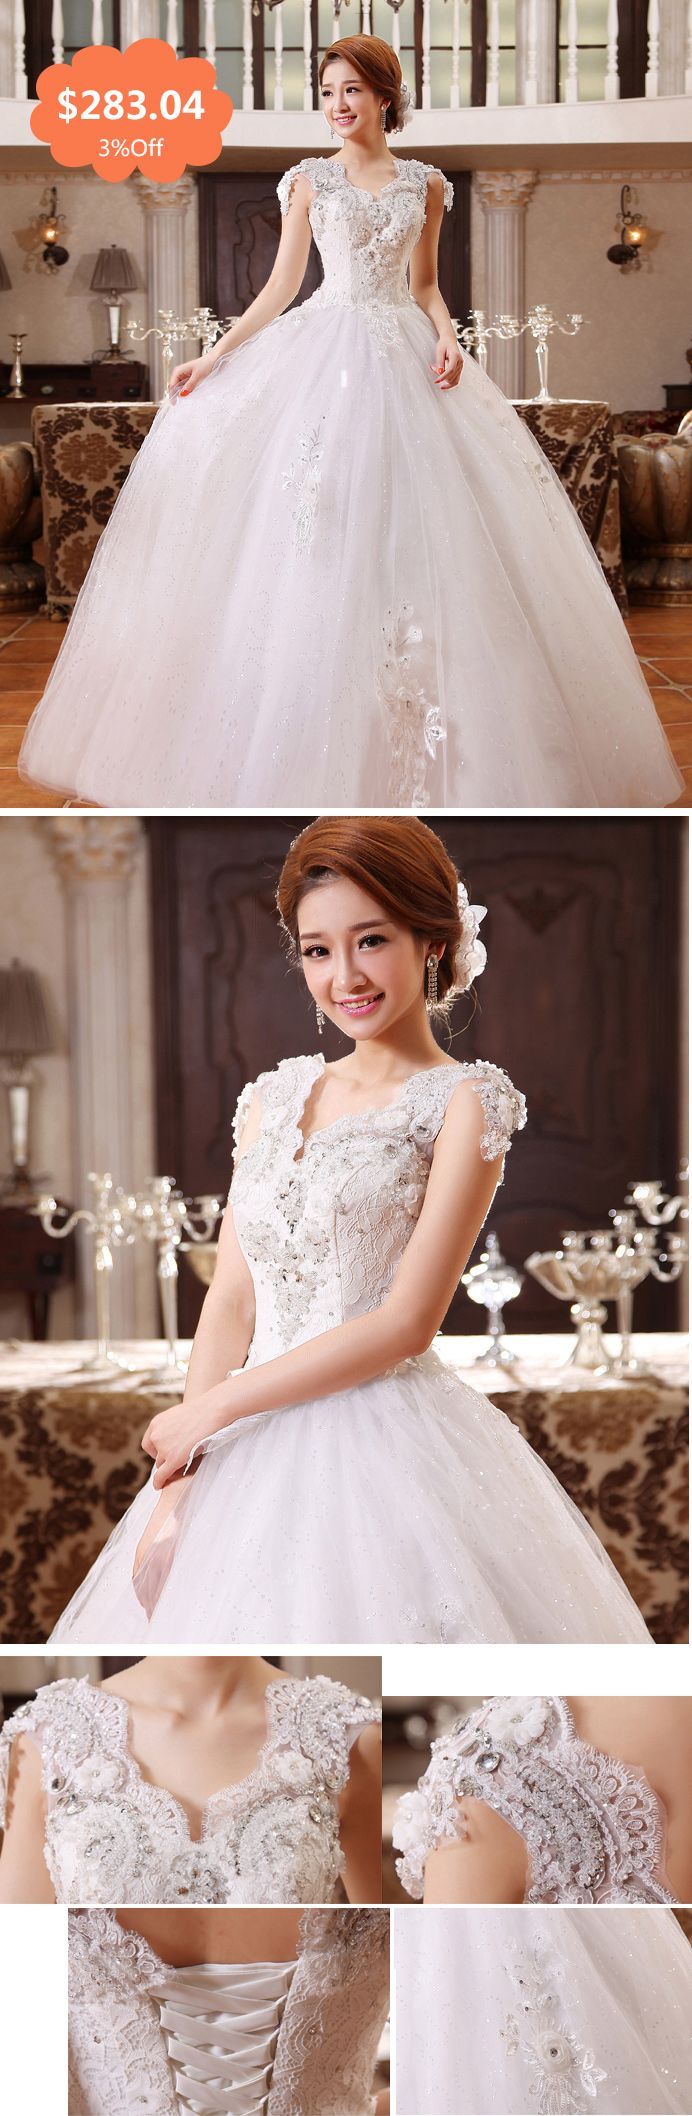 2014 Korean wedding dresses one shoulder strap bridal white winter custom